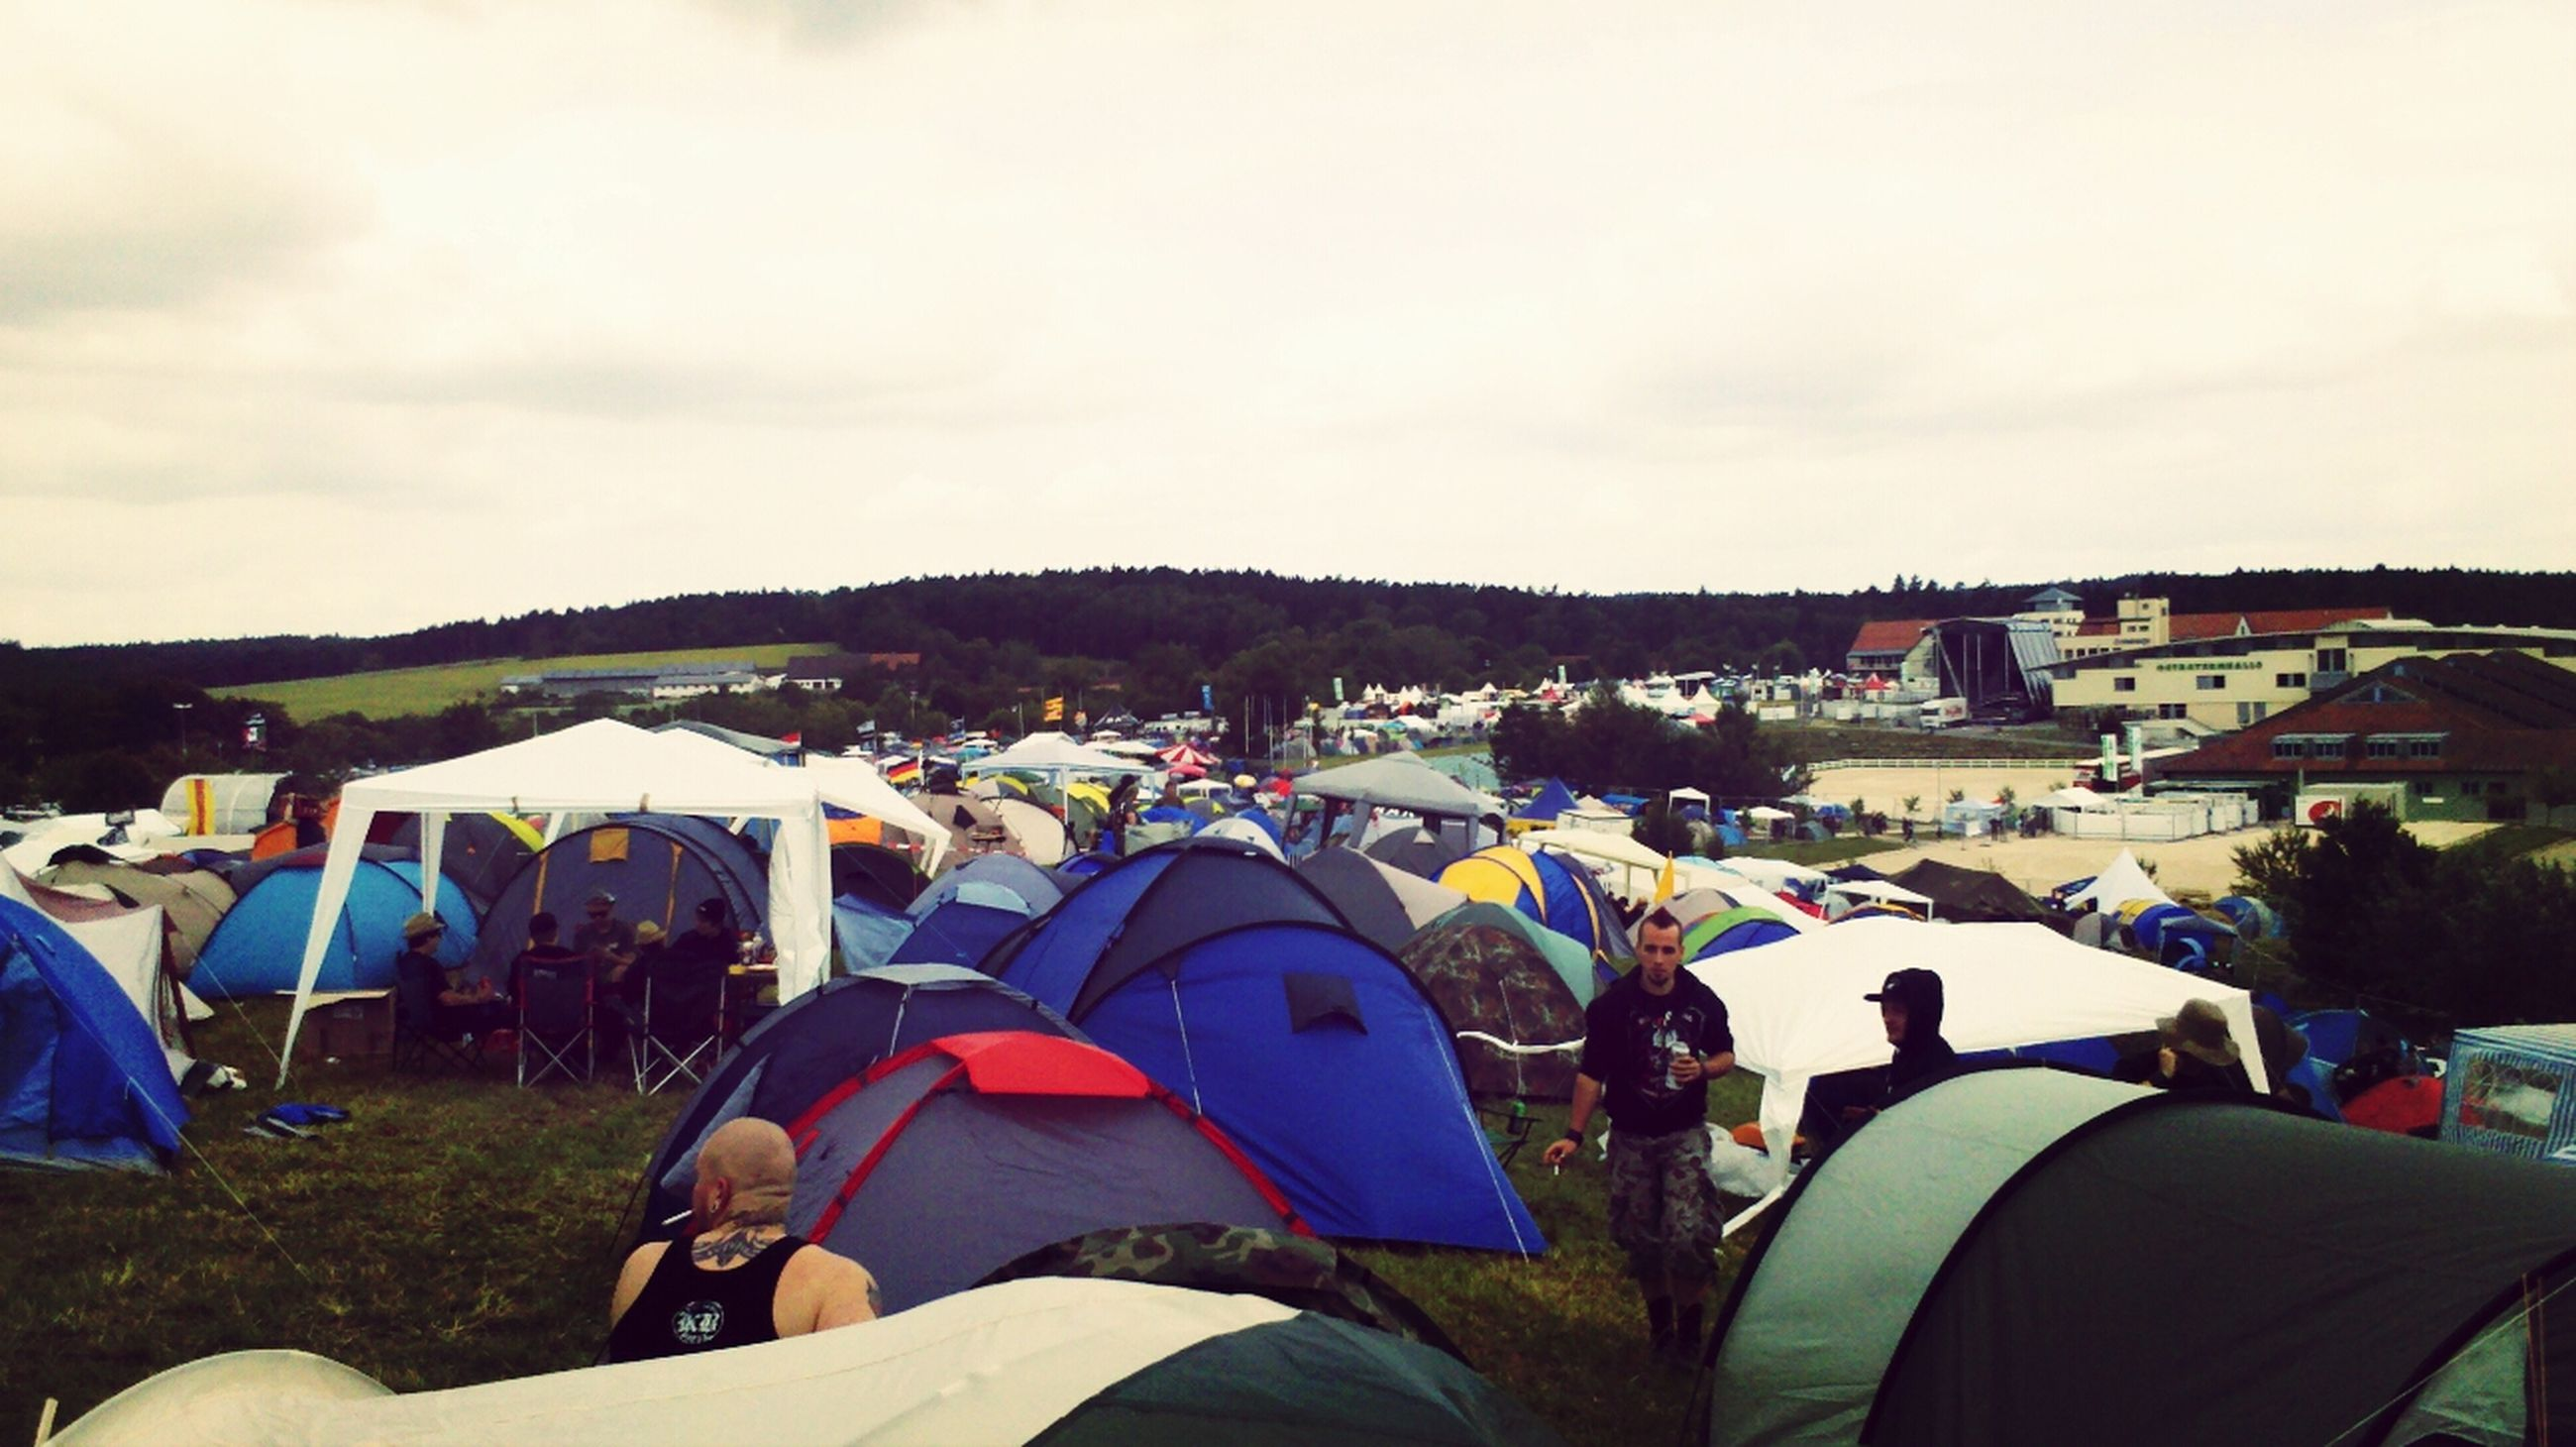 sky, building exterior, men, tent, built structure, architecture, lifestyles, large group of people, leisure activity, person, mountain, outdoors, house, cloud - sky, day, landscape, cloud, panoramic, field